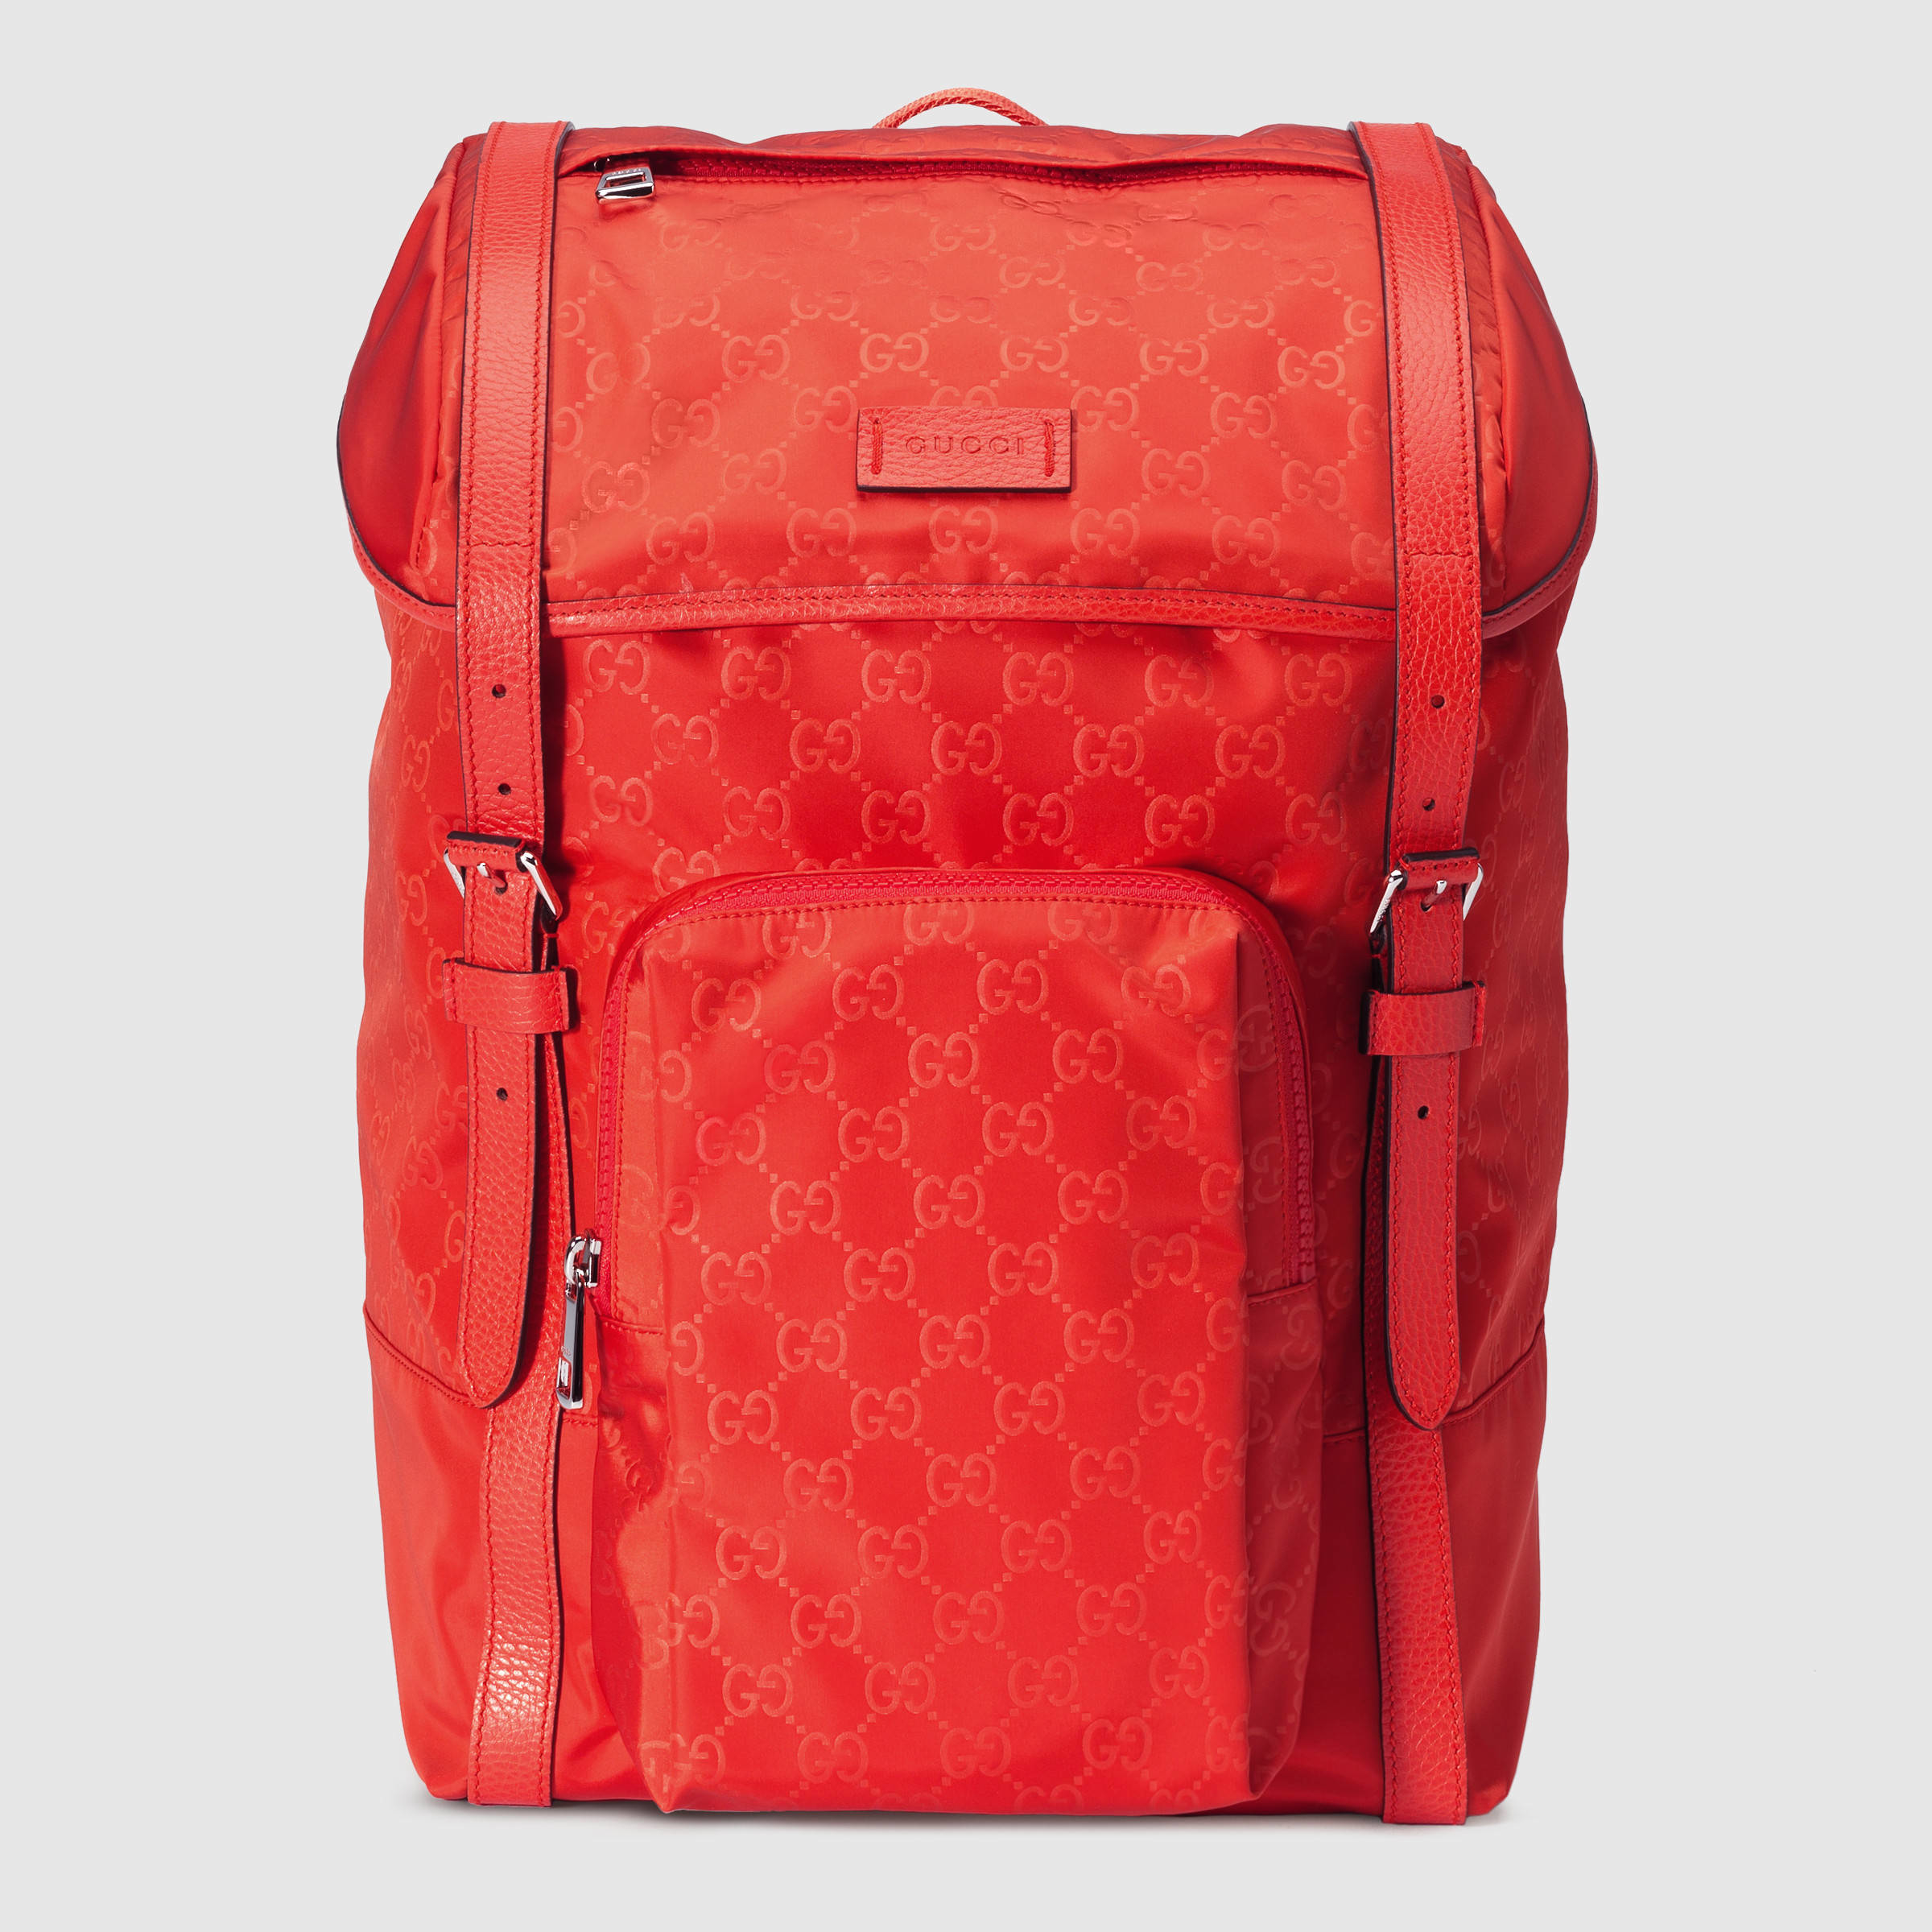 bdc35390b20e All Red Gucci Backpack- Fenix Toulouse Handball